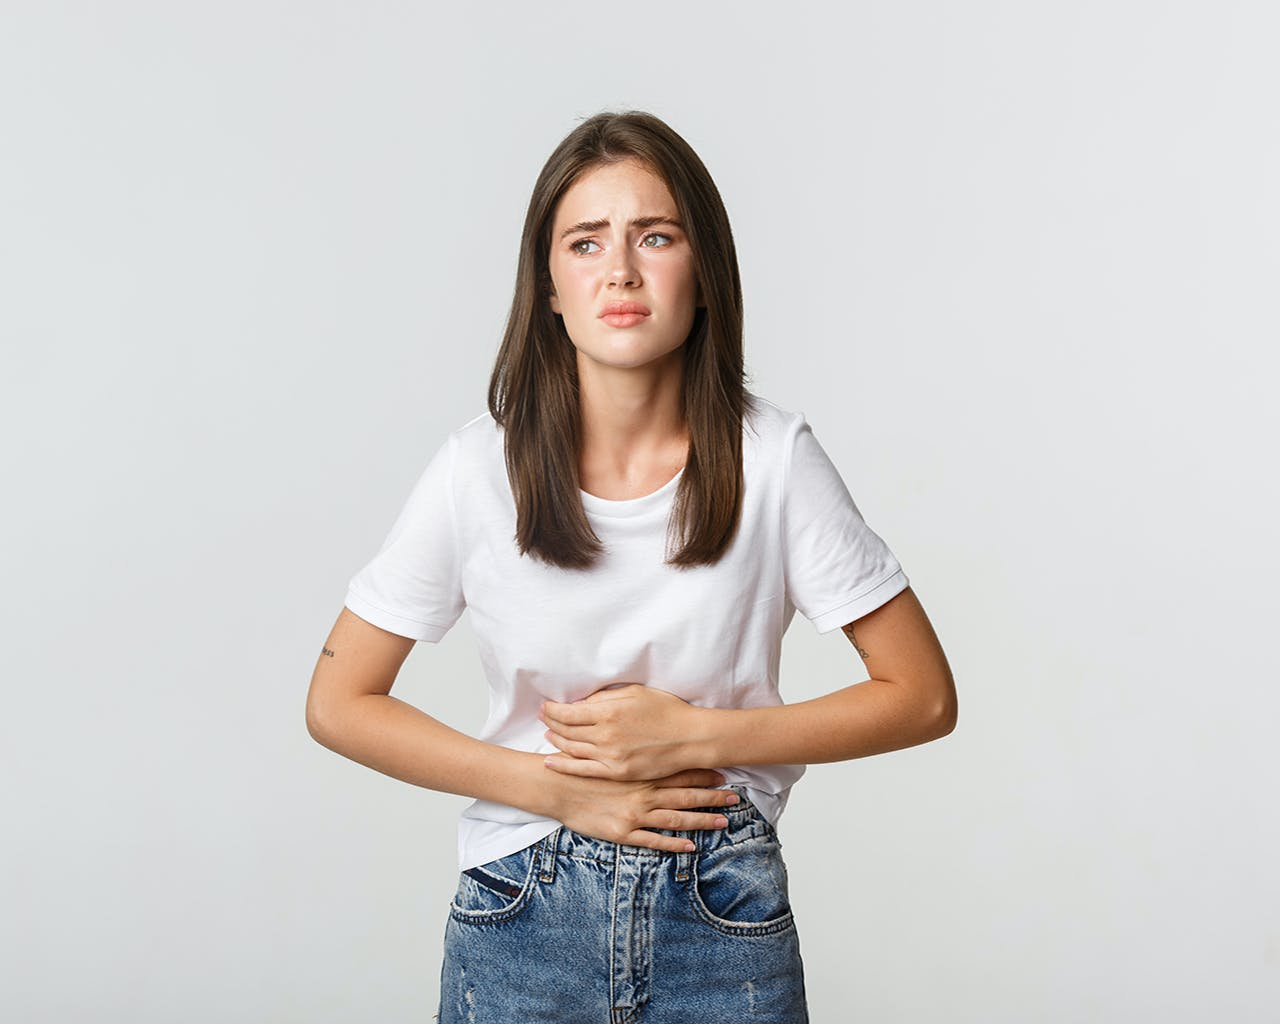 Menstrual Cramps: What They Are, Why They Occur, And When You Should See A Doctor